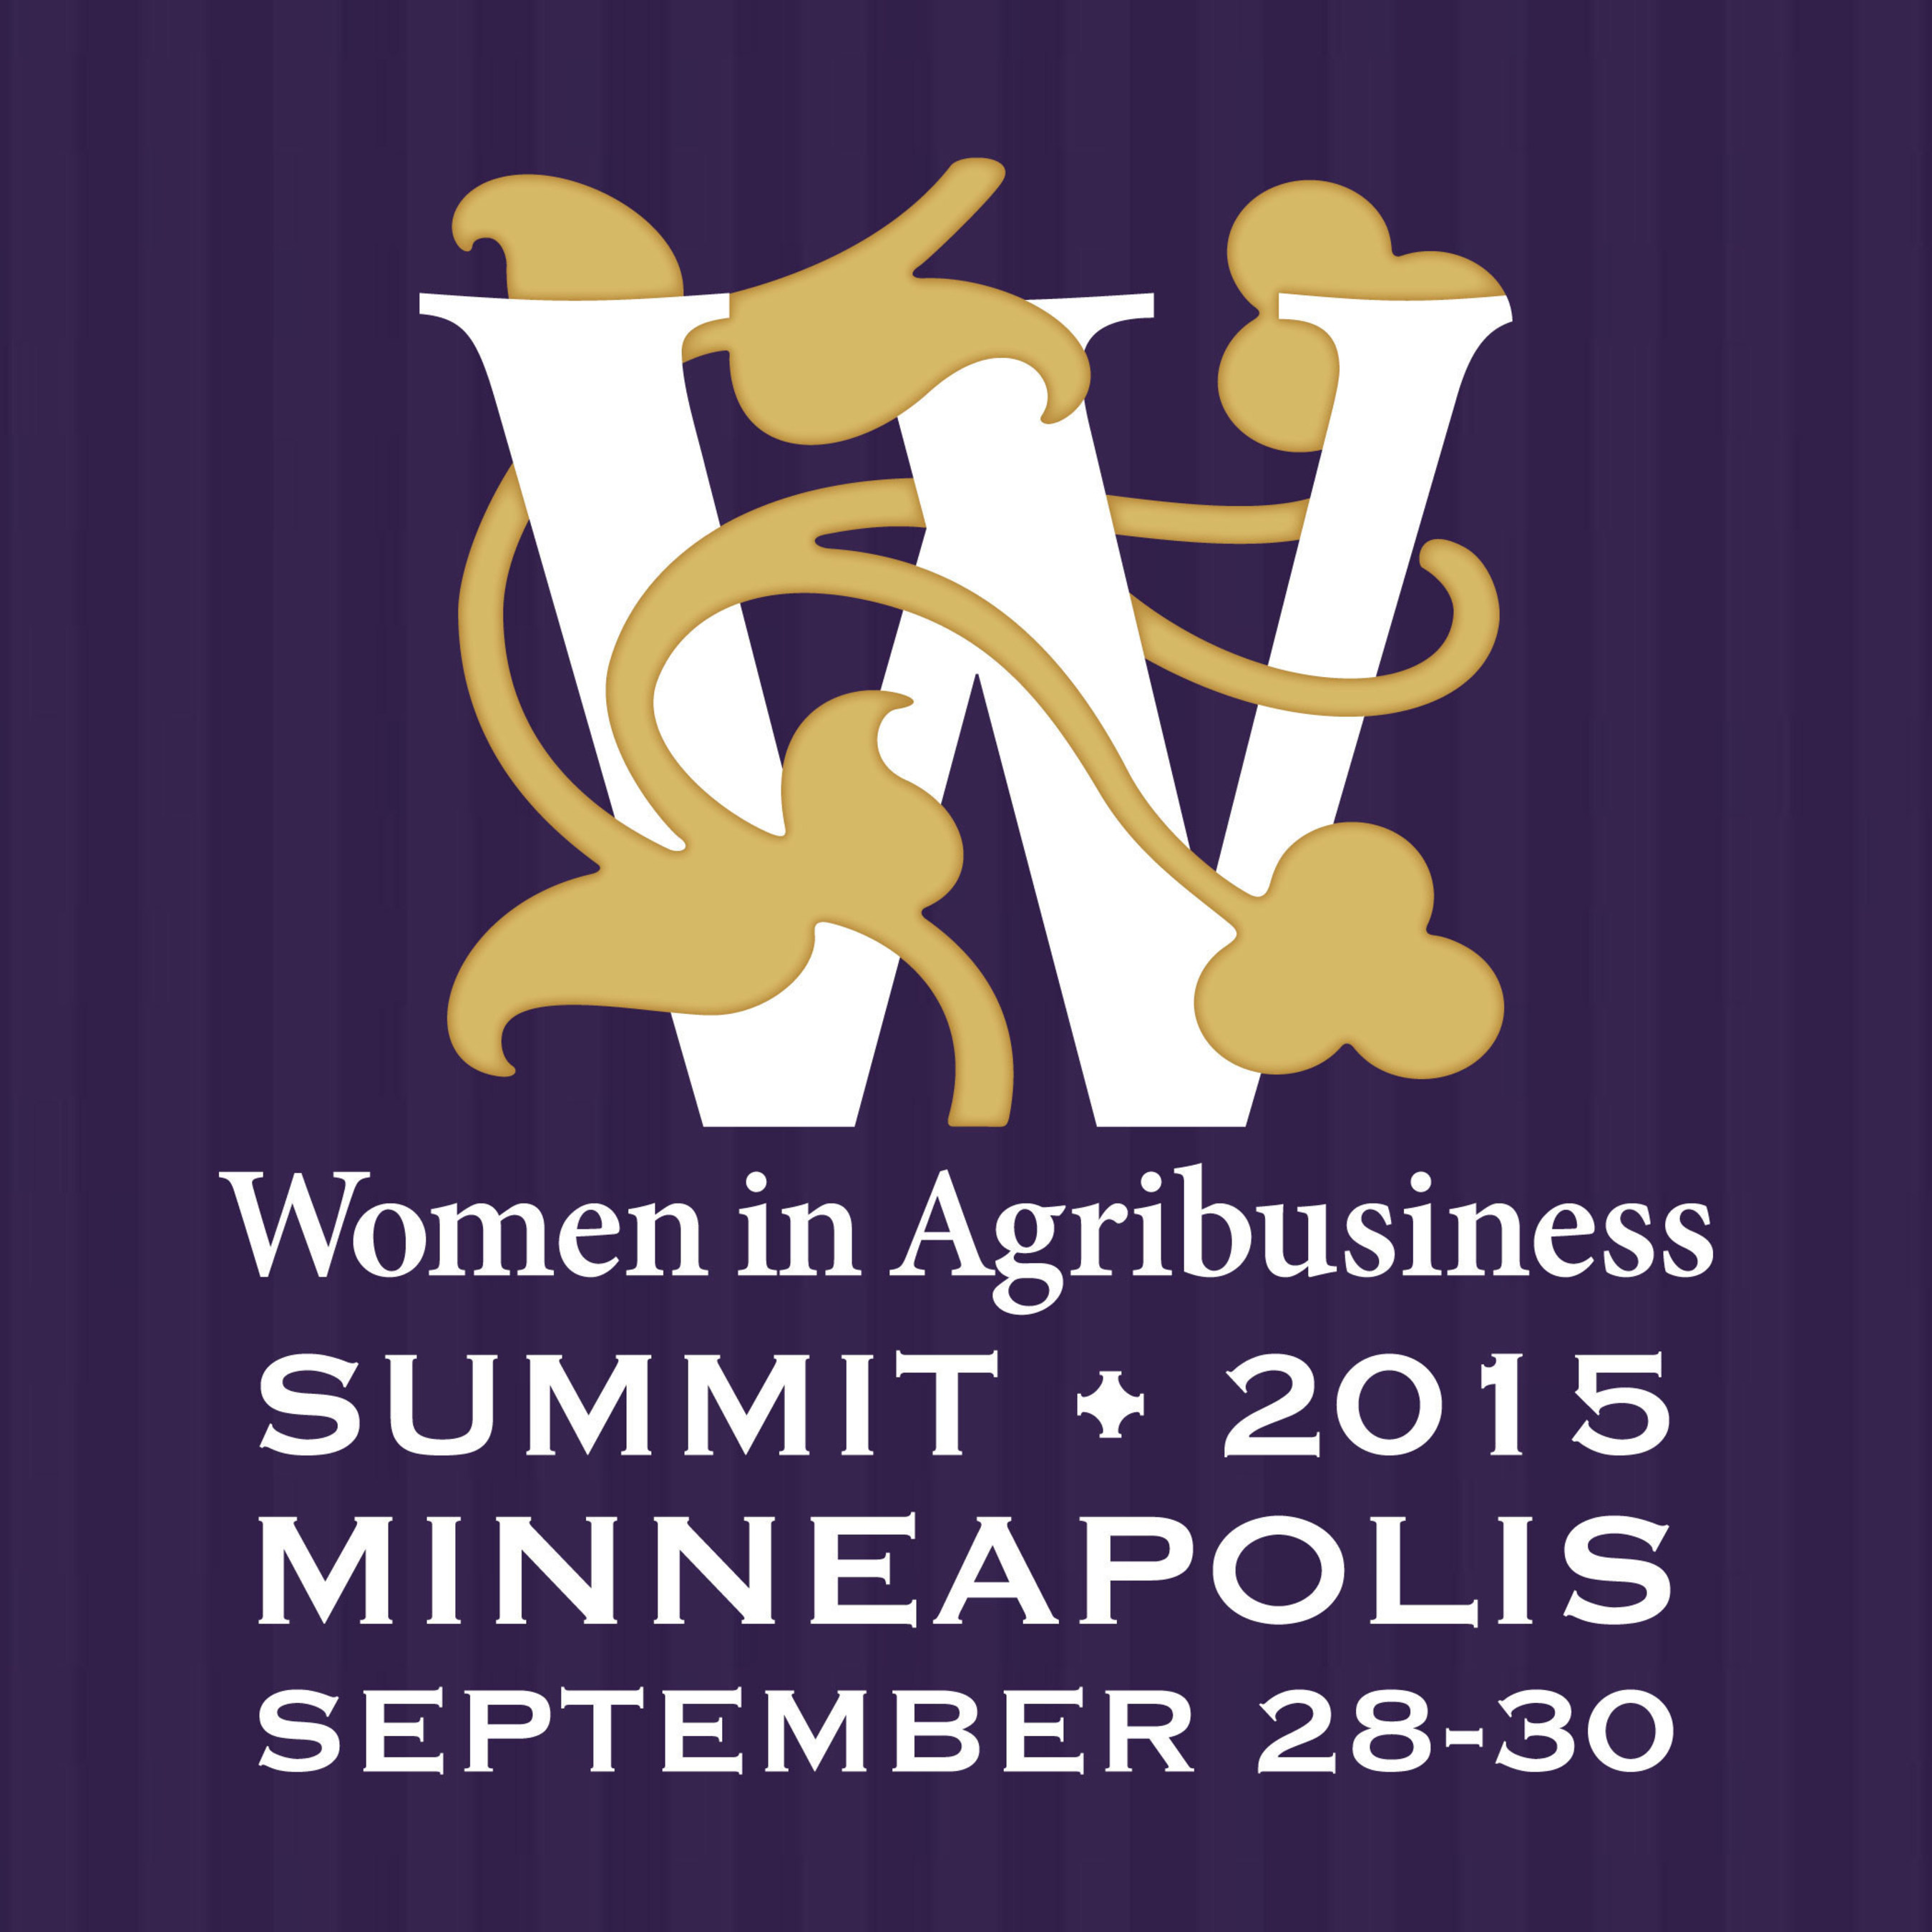 IBM presents data-driven agricultural insights at Women in Agribusiness Summit